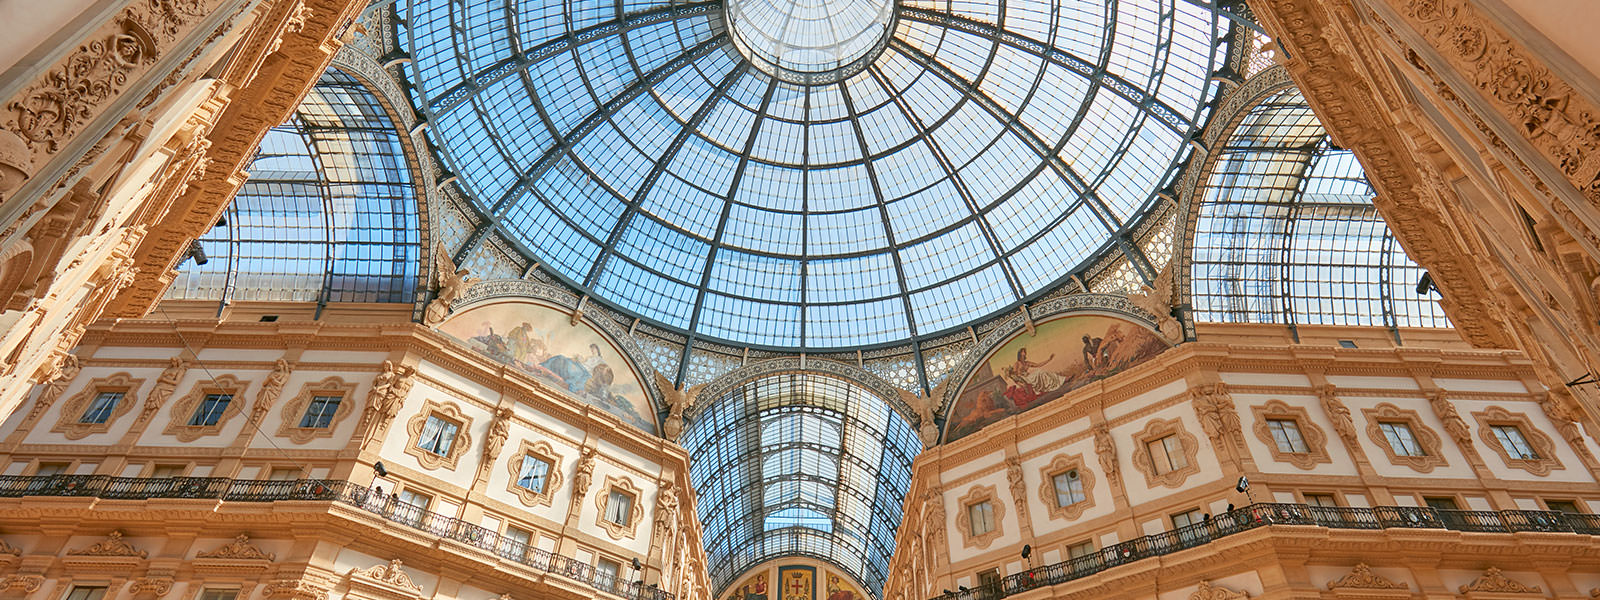 Best-locations-photoshoot-Milan